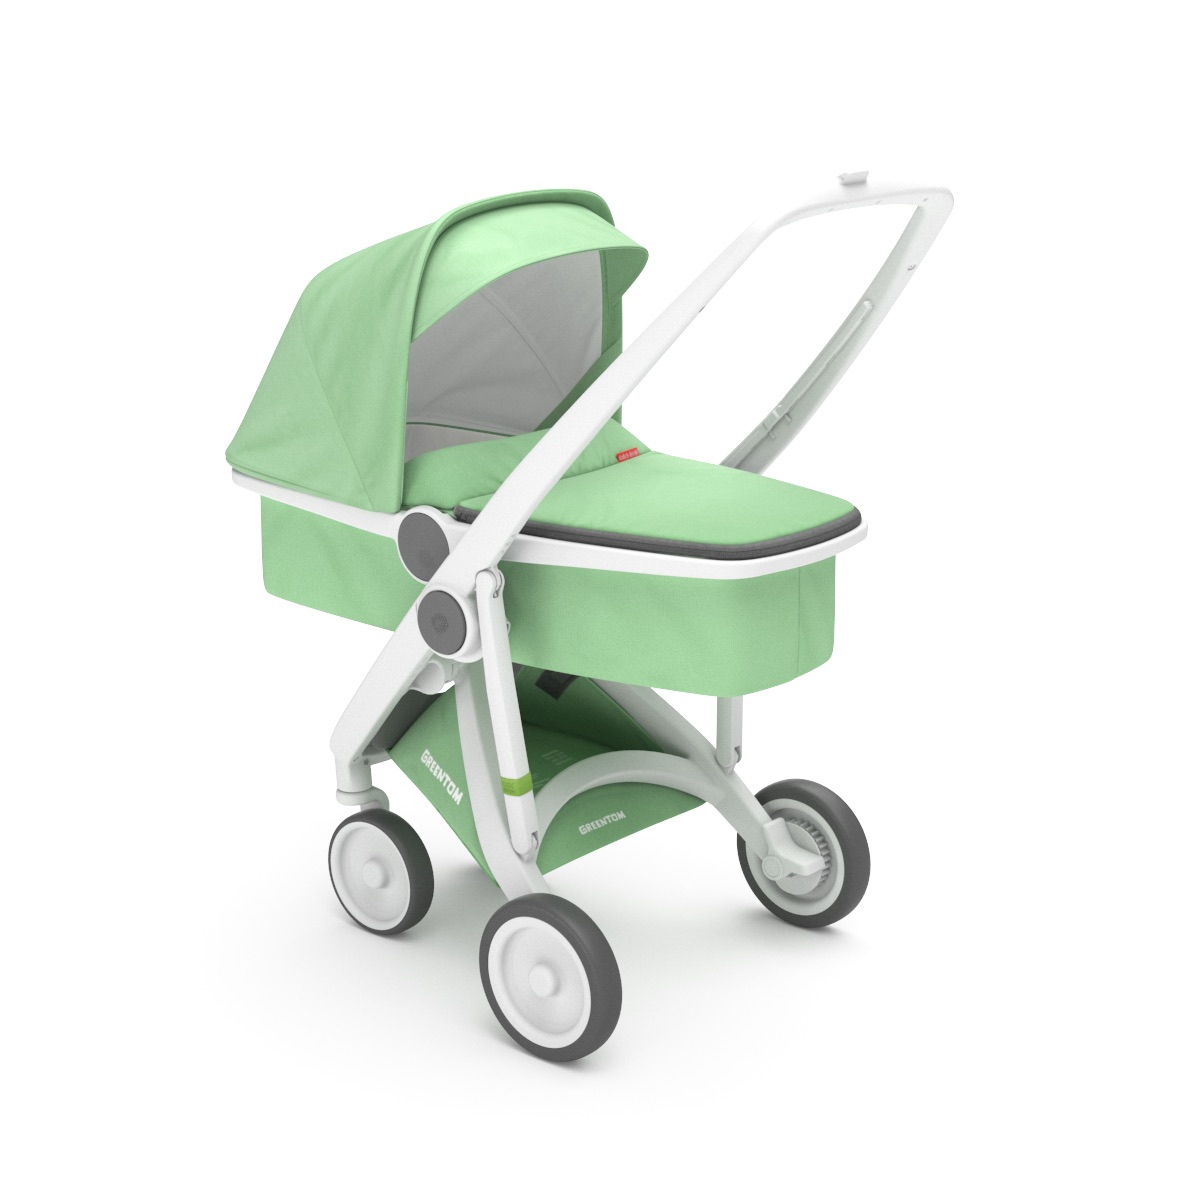 Poussette Upp Carrycot : Chassis blanc, Kit Nacelle menthe Greentom BamBinou